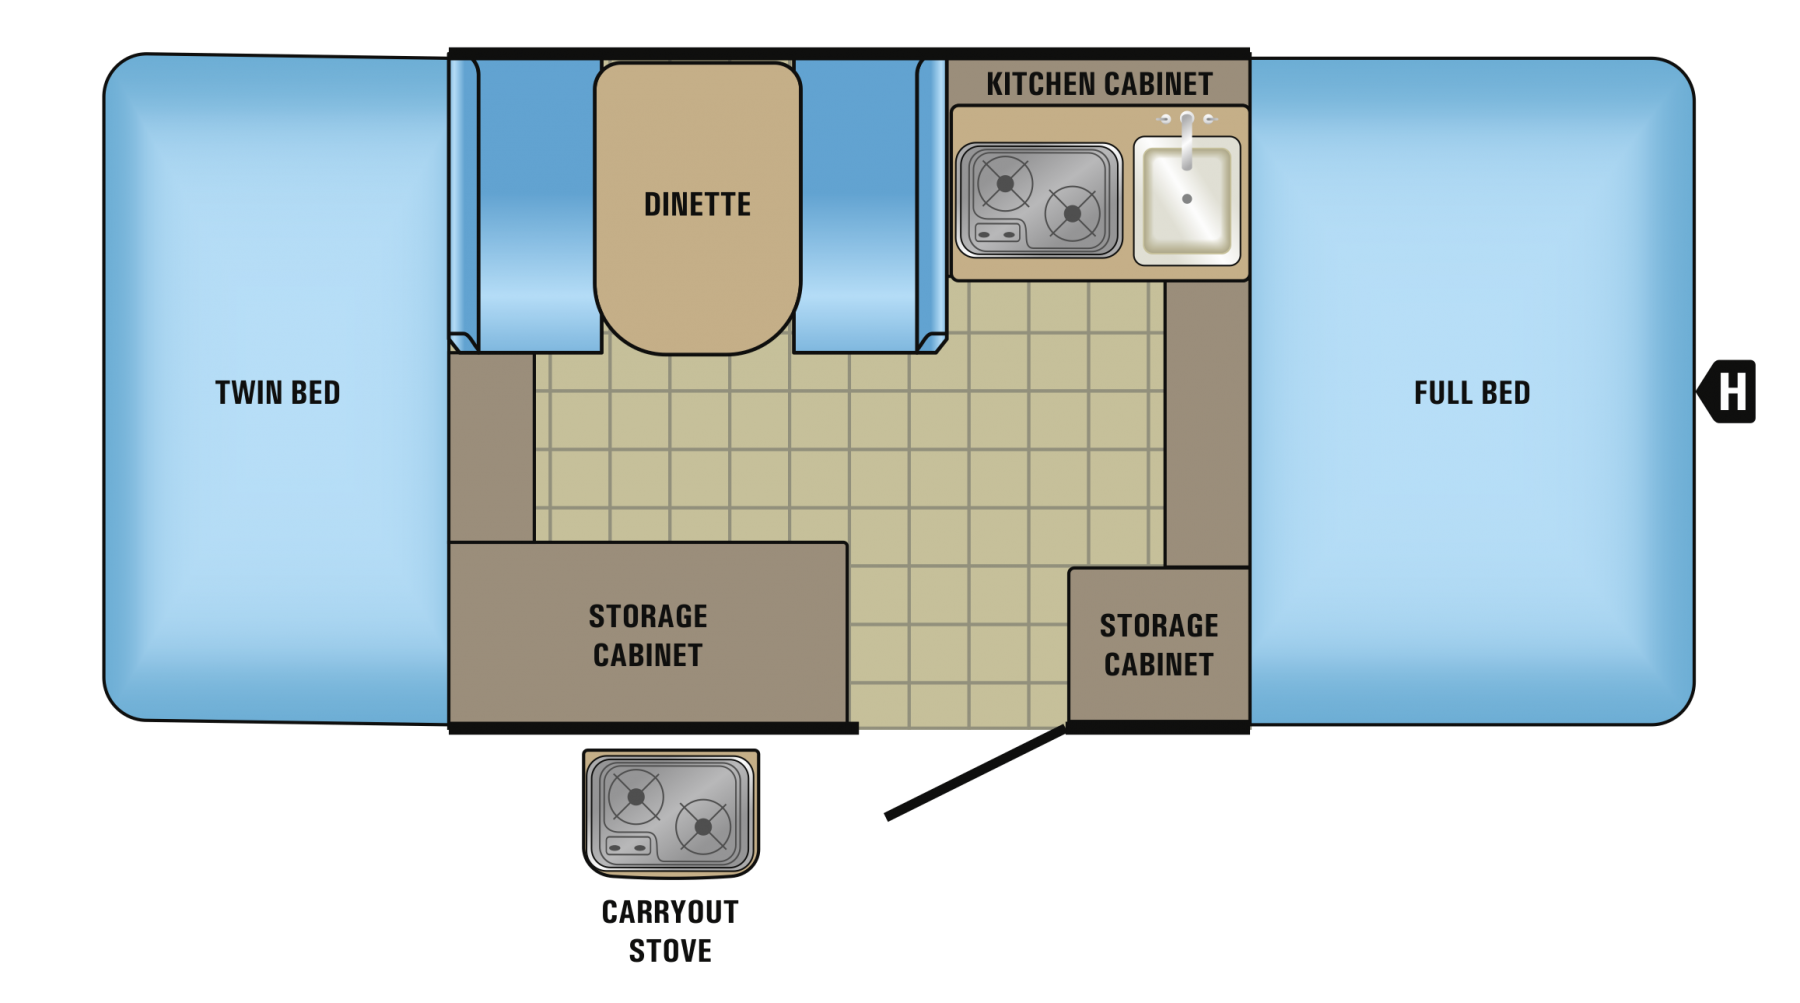 jayco pop up wiring diagram jayco 1209sc 40 wiring diagram images wiring diagrams. Black Bedroom Furniture Sets. Home Design Ideas